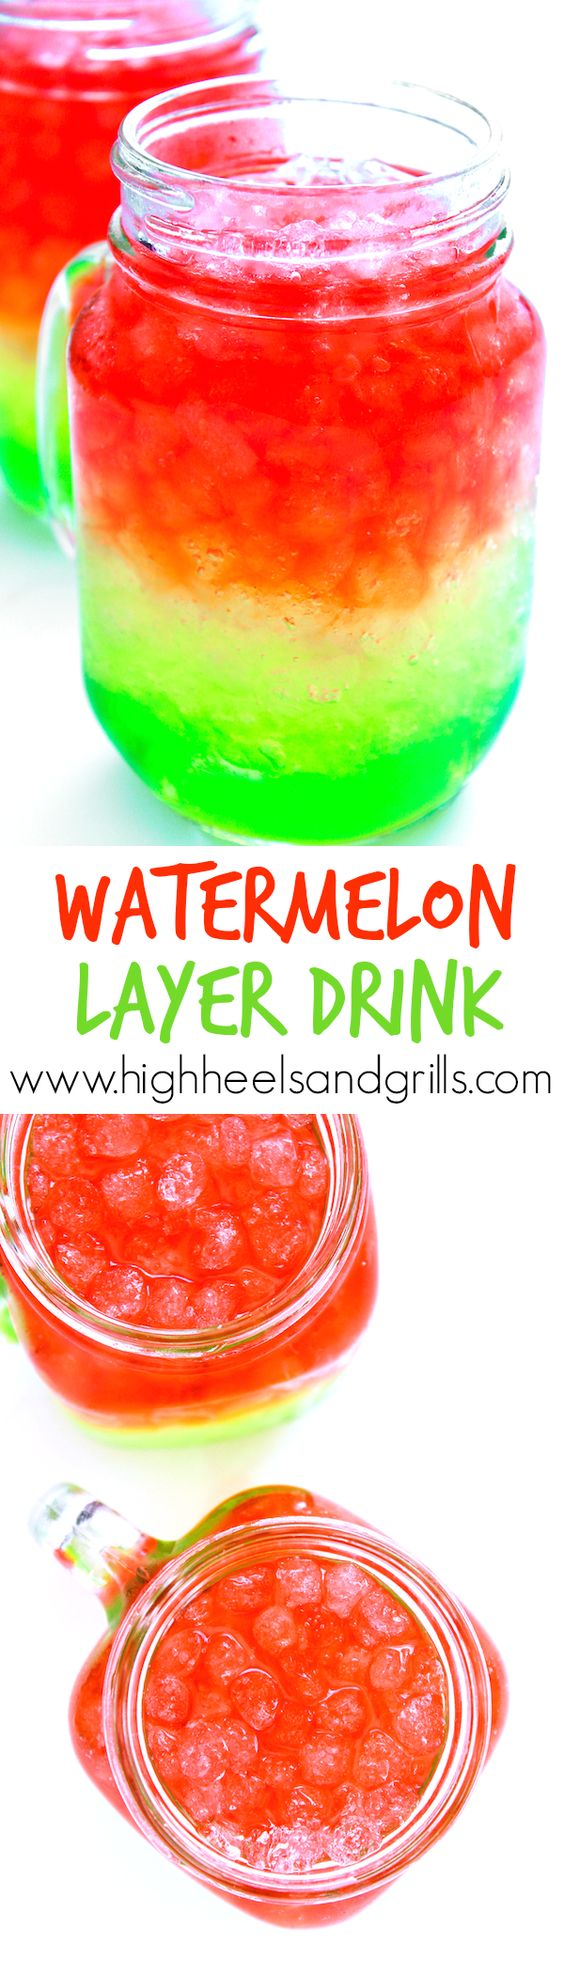 Watermelon Layer Drink - Such a cute, summery drink! Would be great for a watermelon themed party or BBQ.